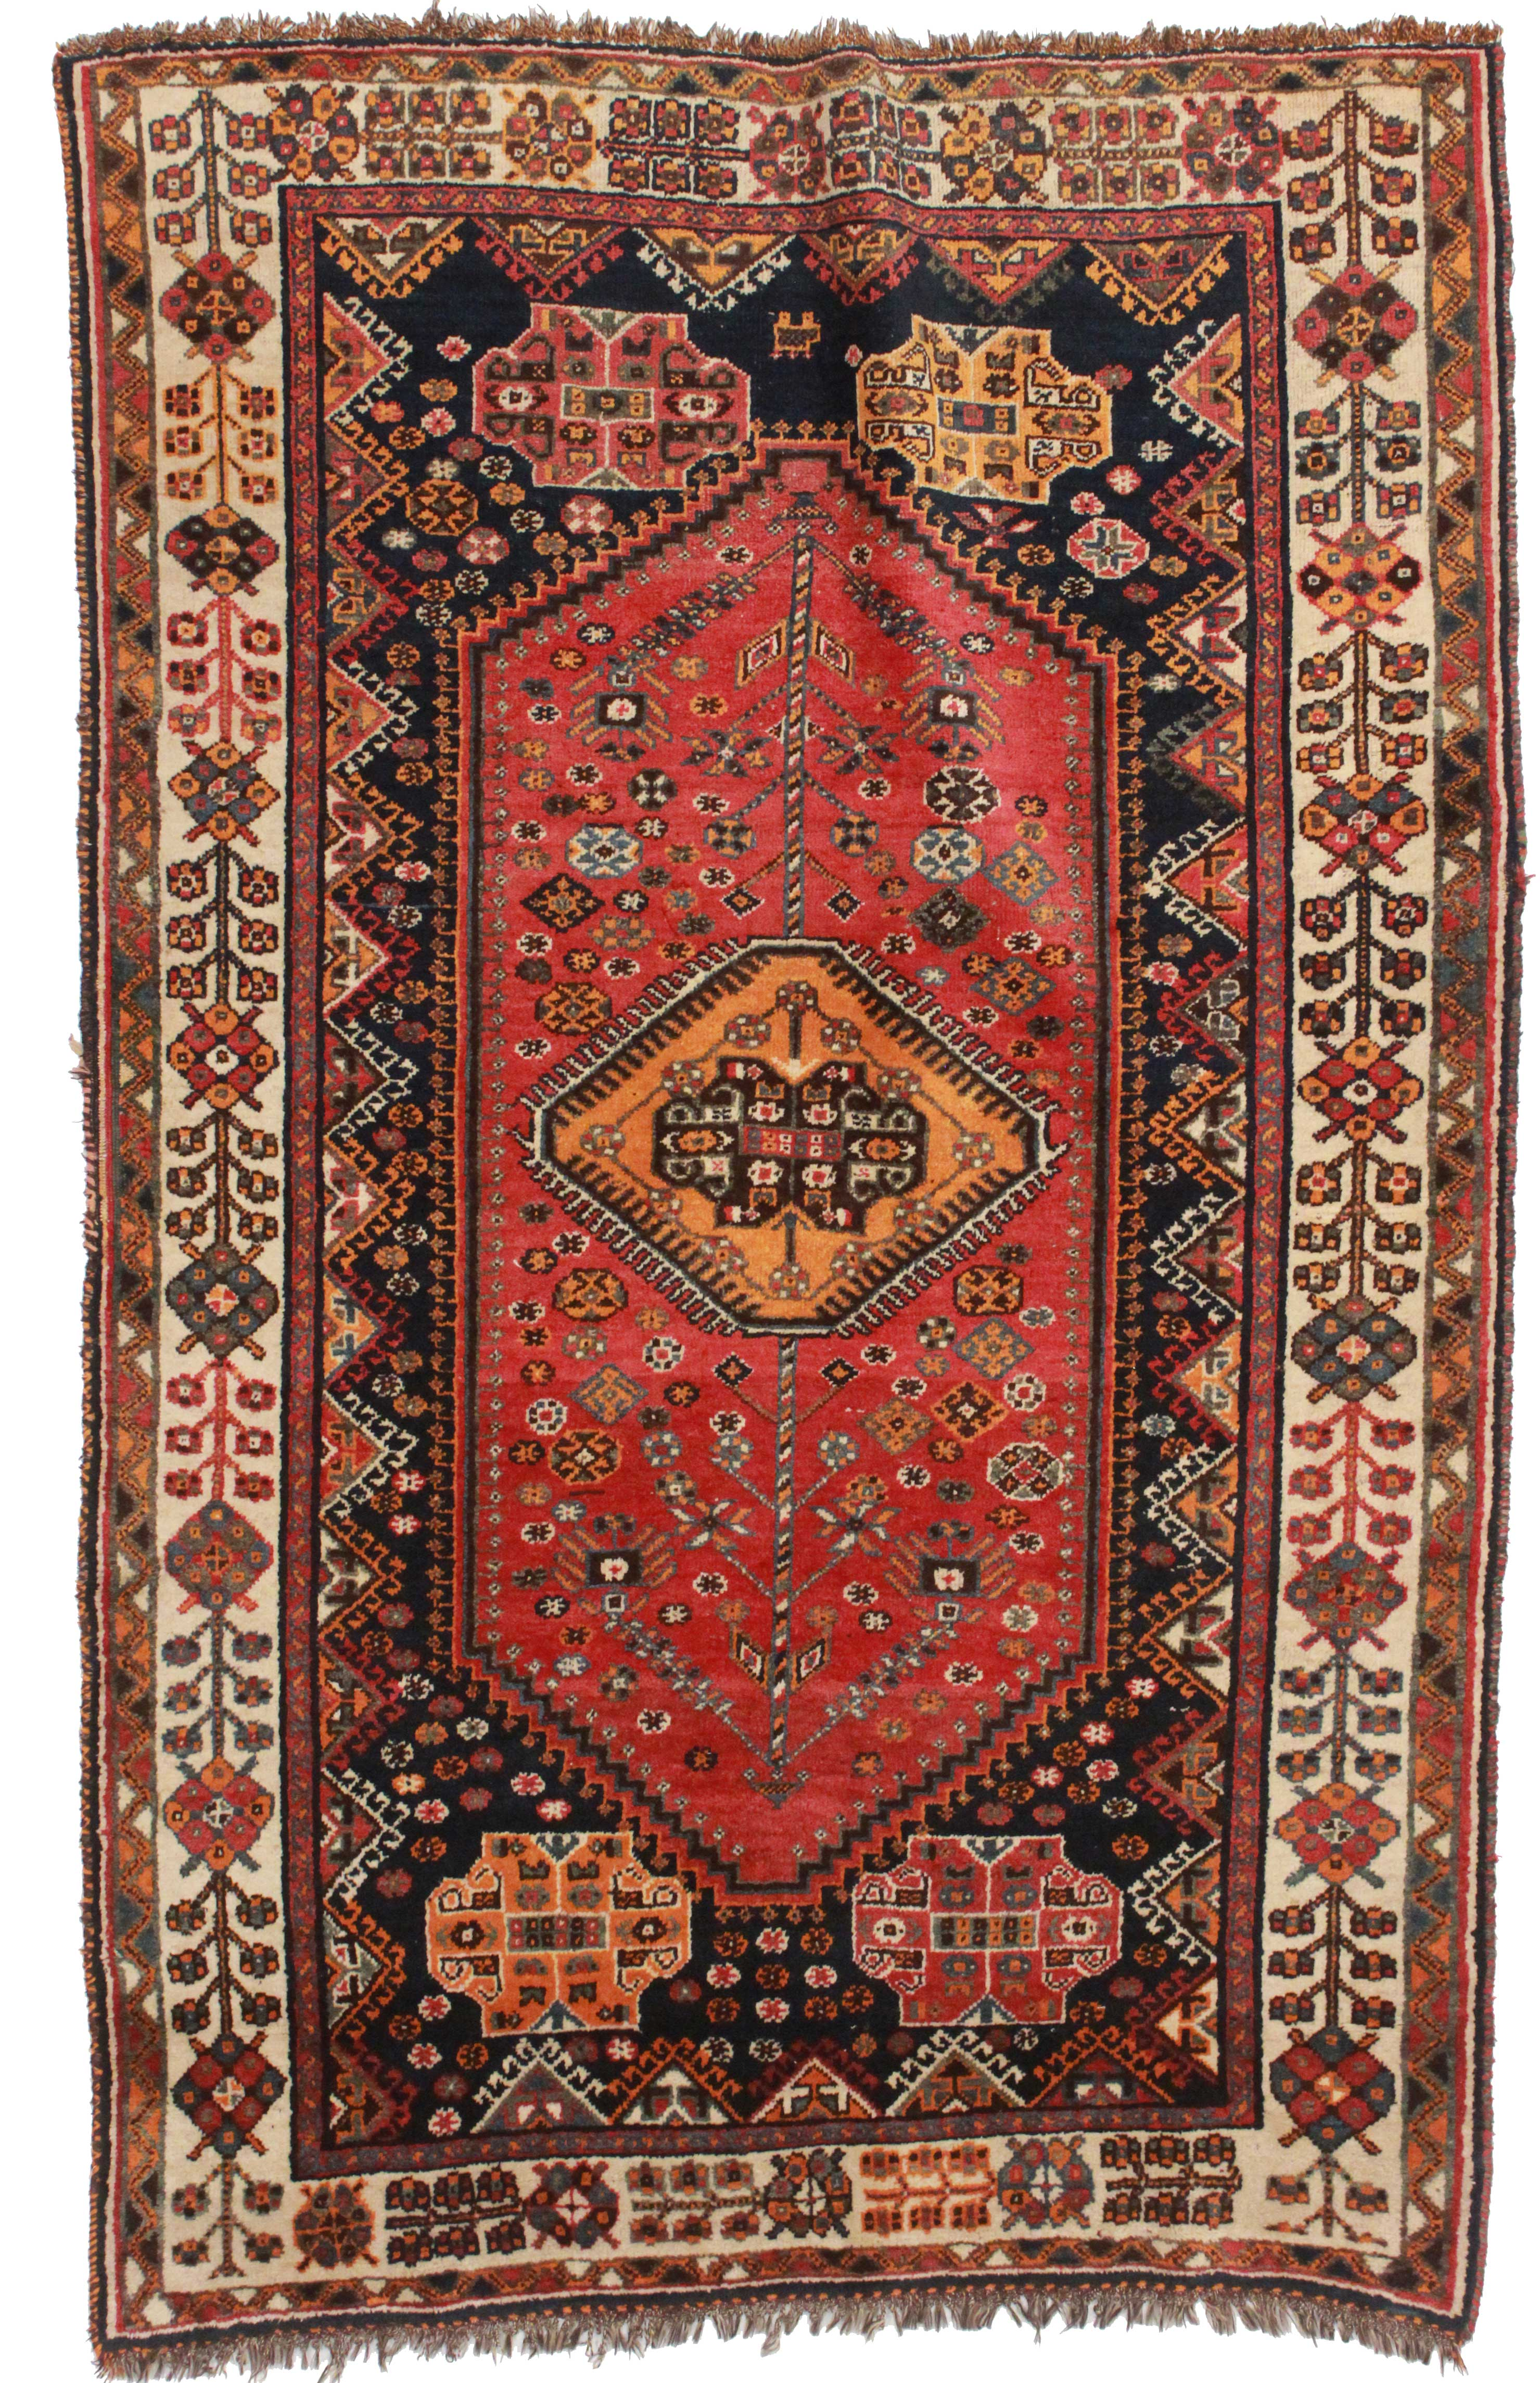 5 x 7 vintage persian shiraz wool rug 10624 exclusive oriental rugs. Black Bedroom Furniture Sets. Home Design Ideas